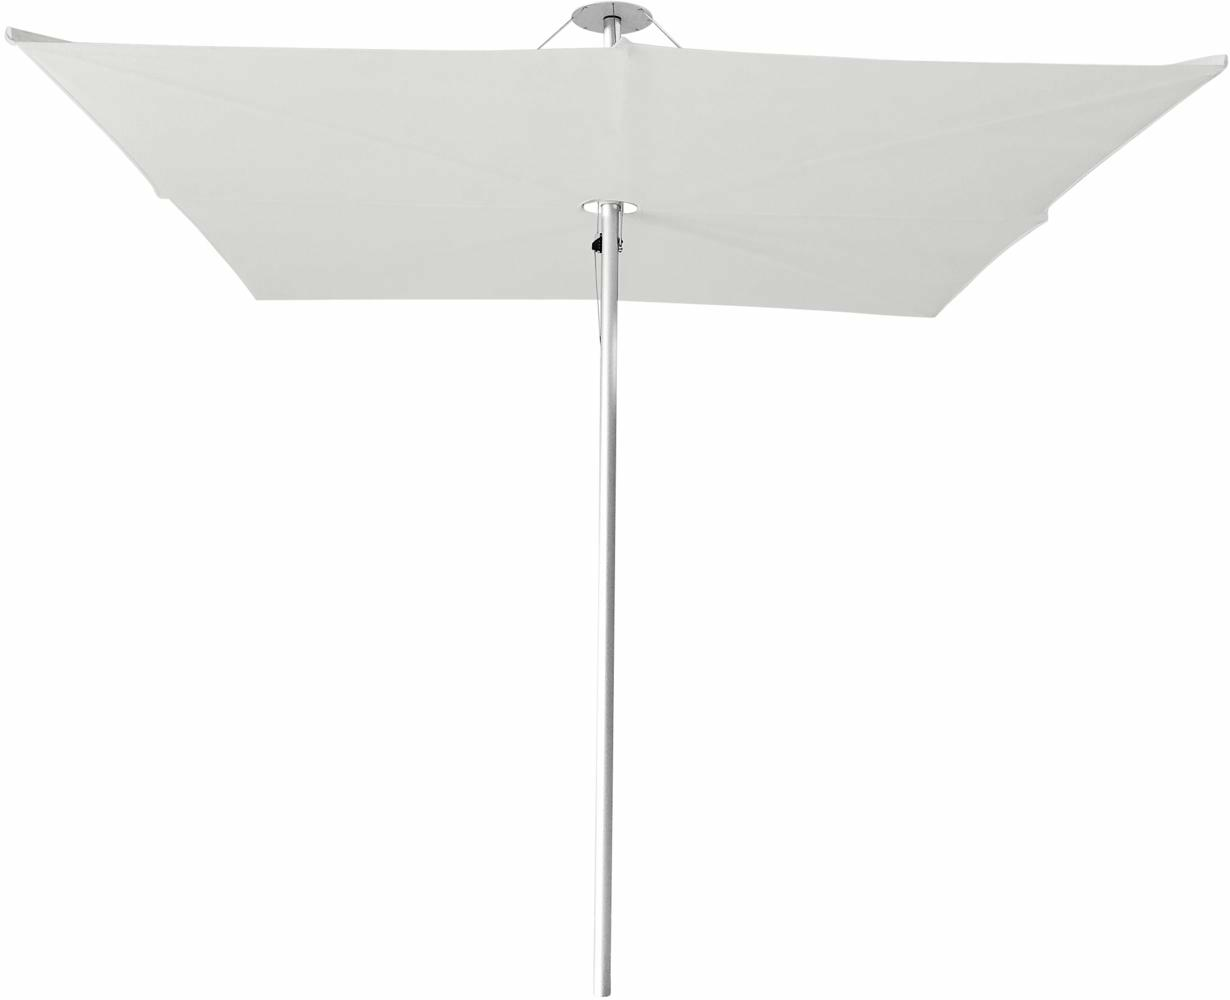 Infina canopy square 2,5 m in colour Canvas